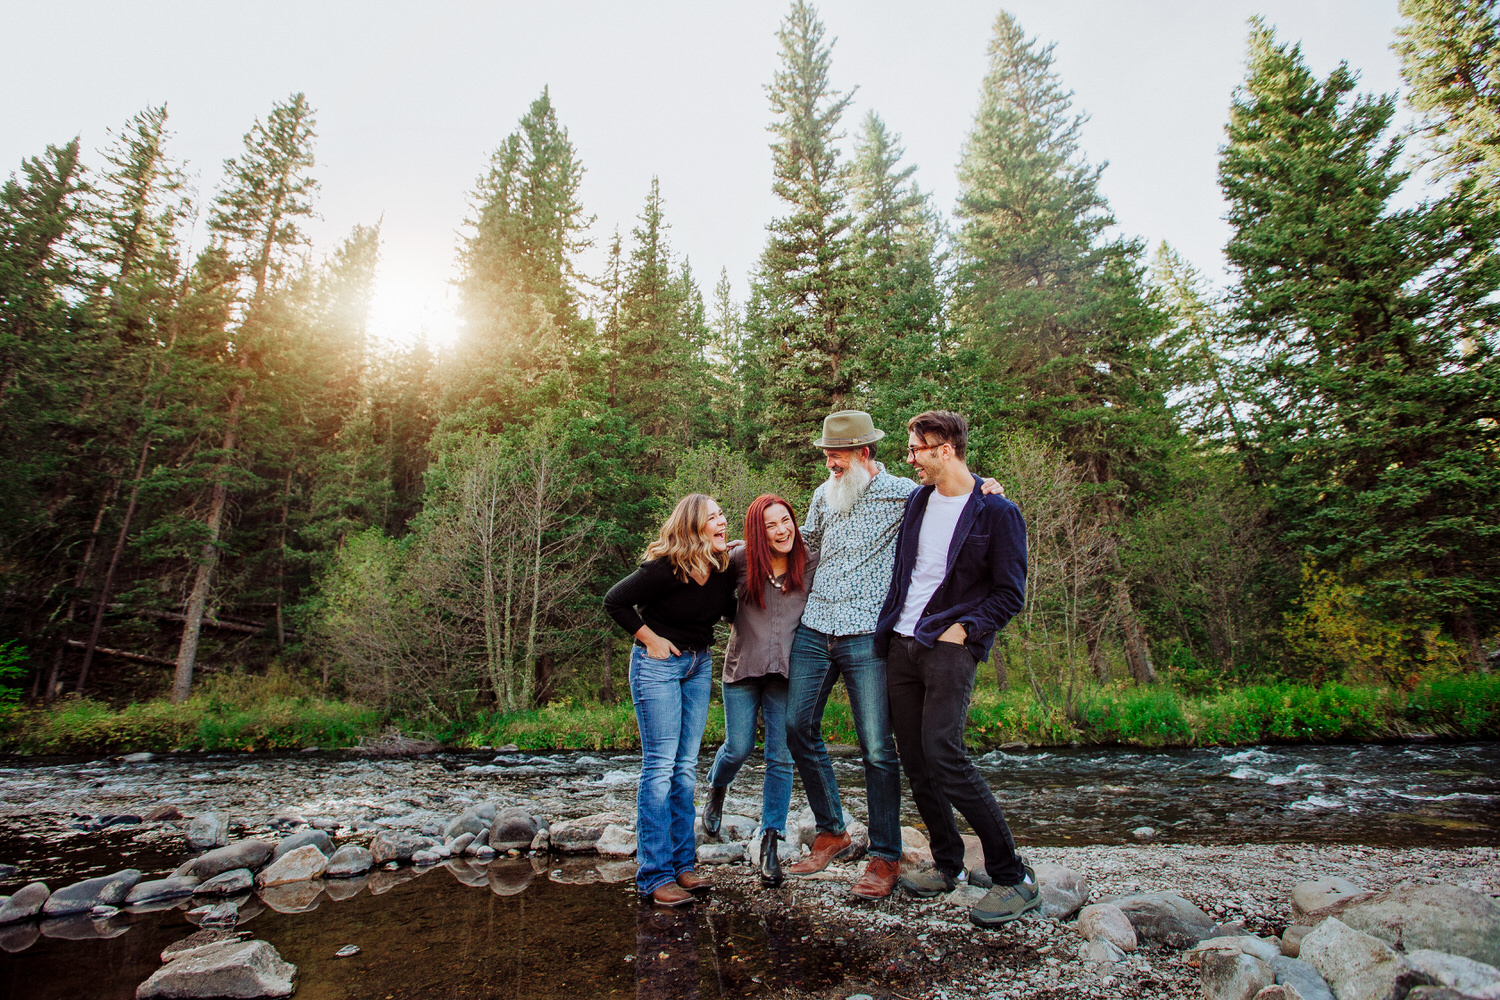 The Green Family braving the cold waters near Great Falls Montana. Their family pictures are always so perfect!